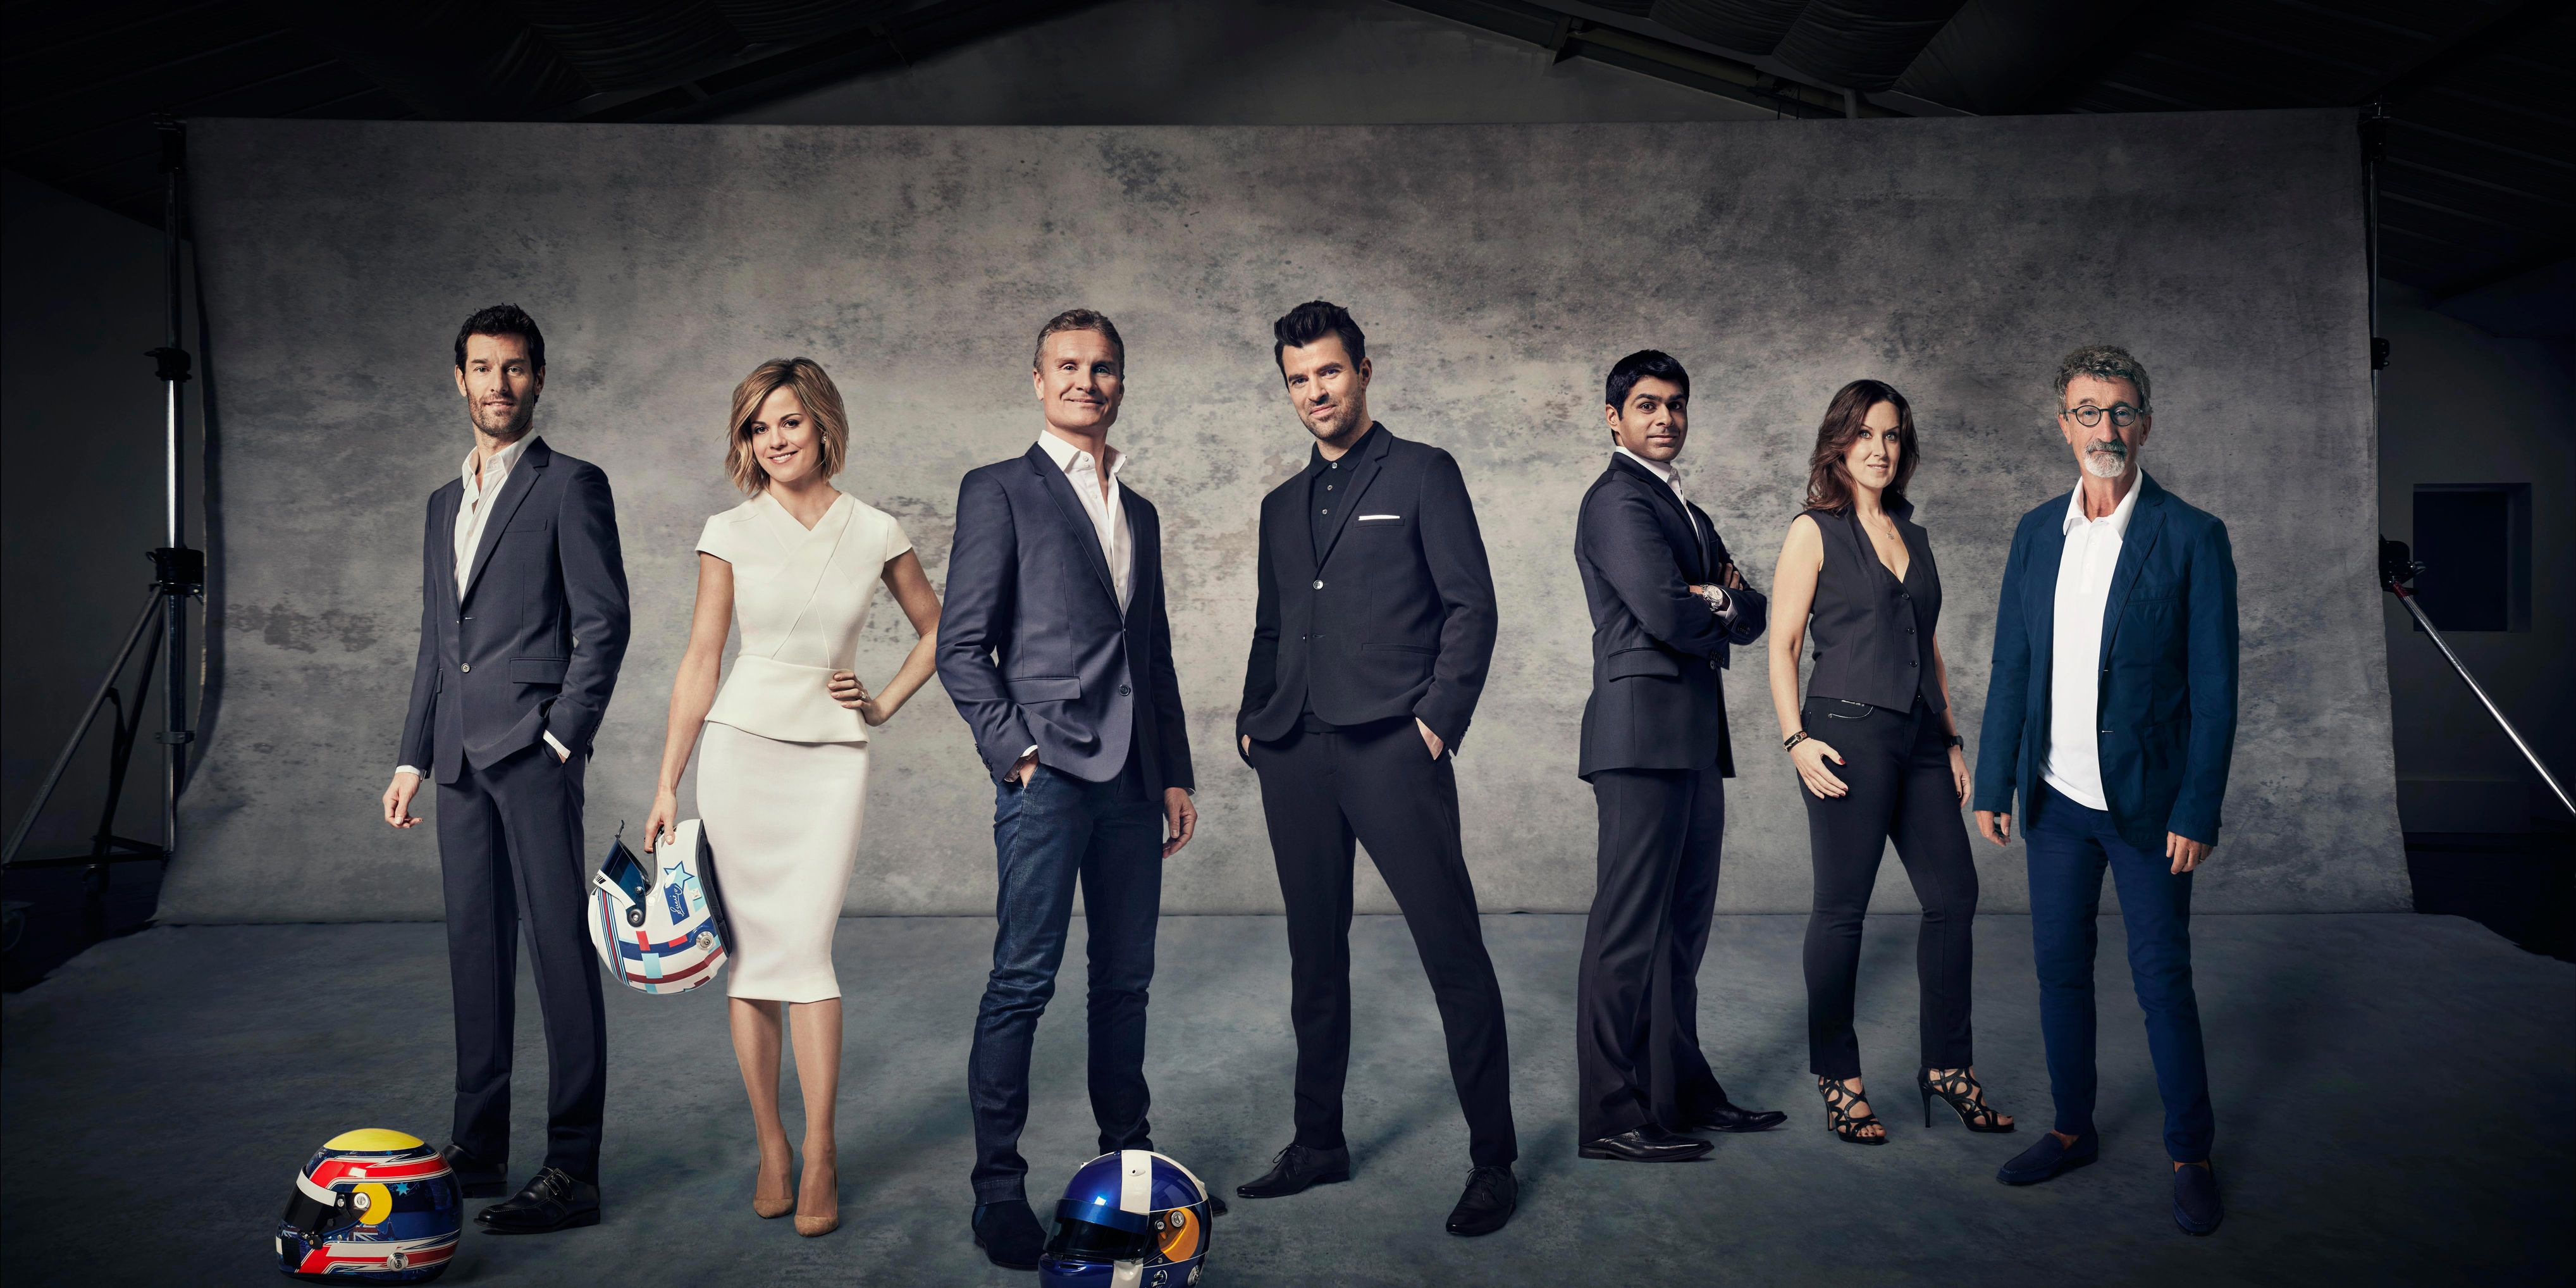 Channel 4 F1 team